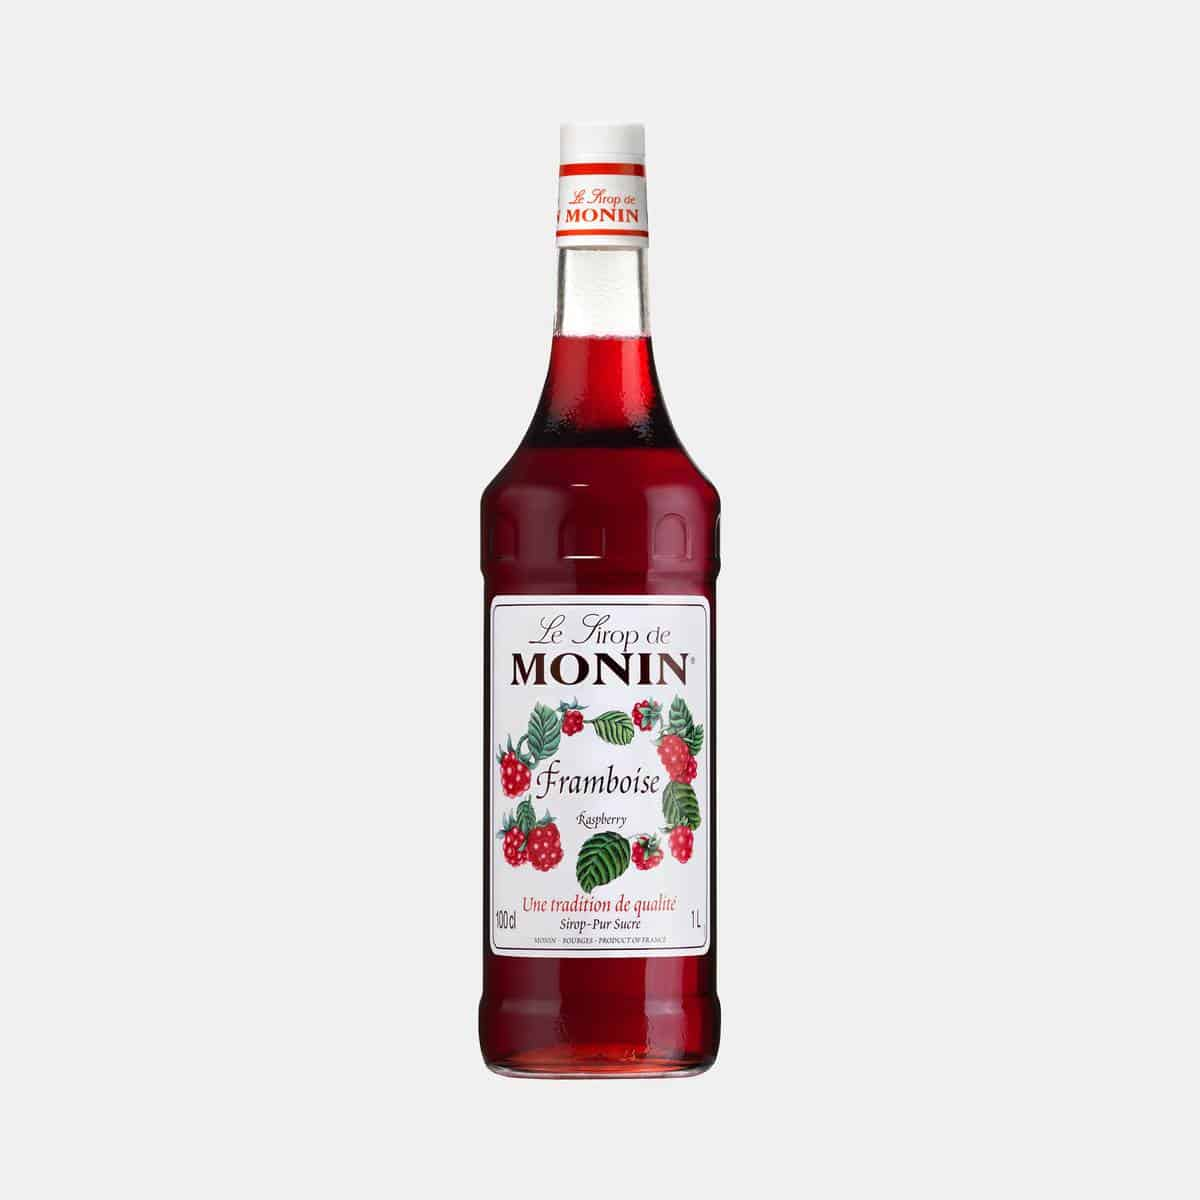 Monin Raspberry Syrup 1 Liter Glass Bottle